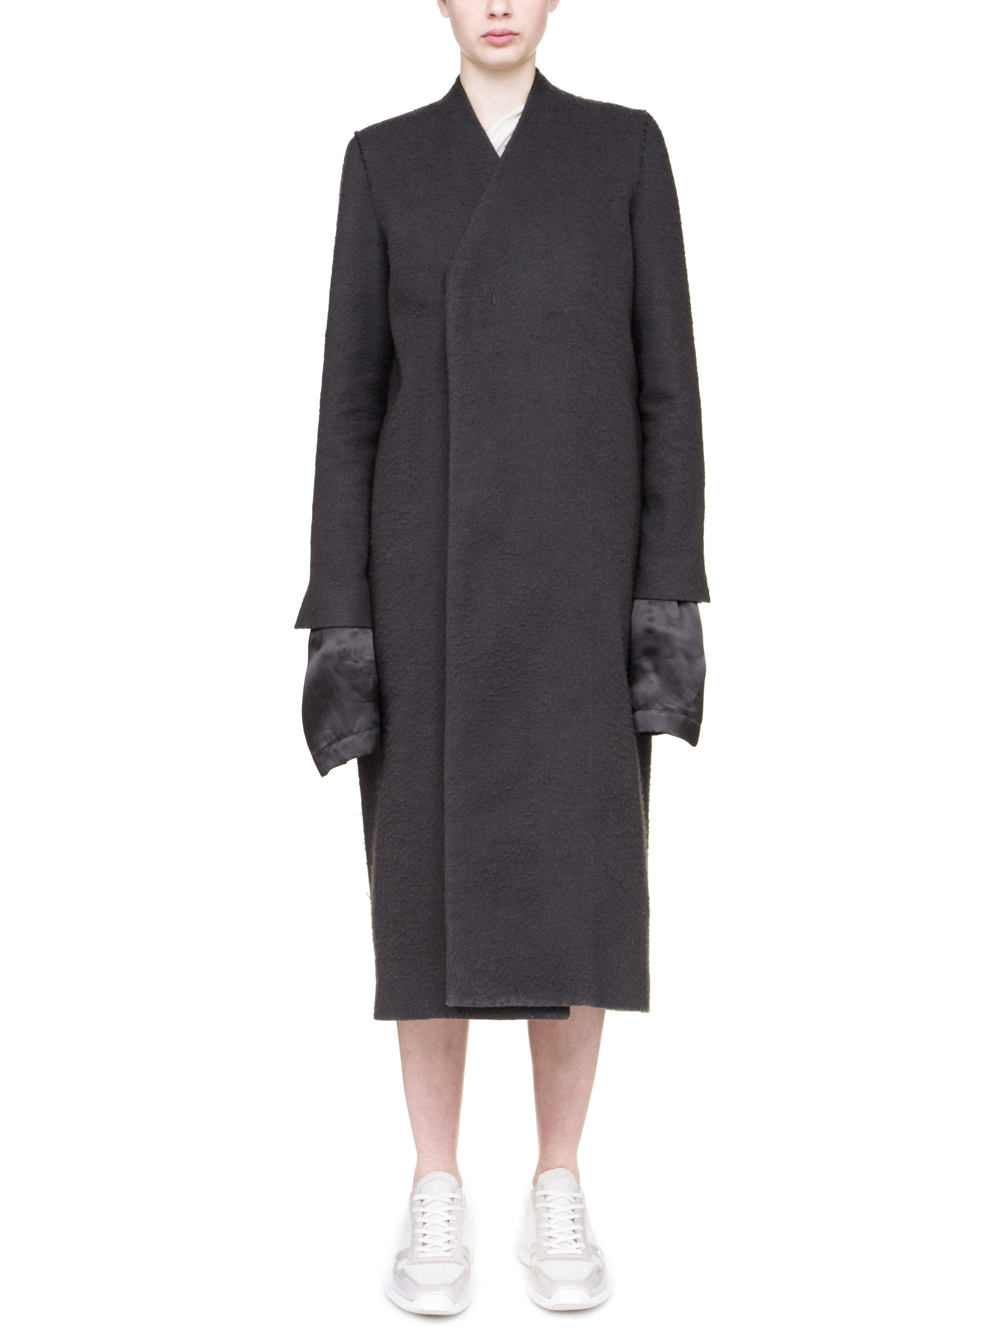 RICK OWENS OFF-THE-RUNWAY MUSEUM COAT IN GREY CAMEL WOOL